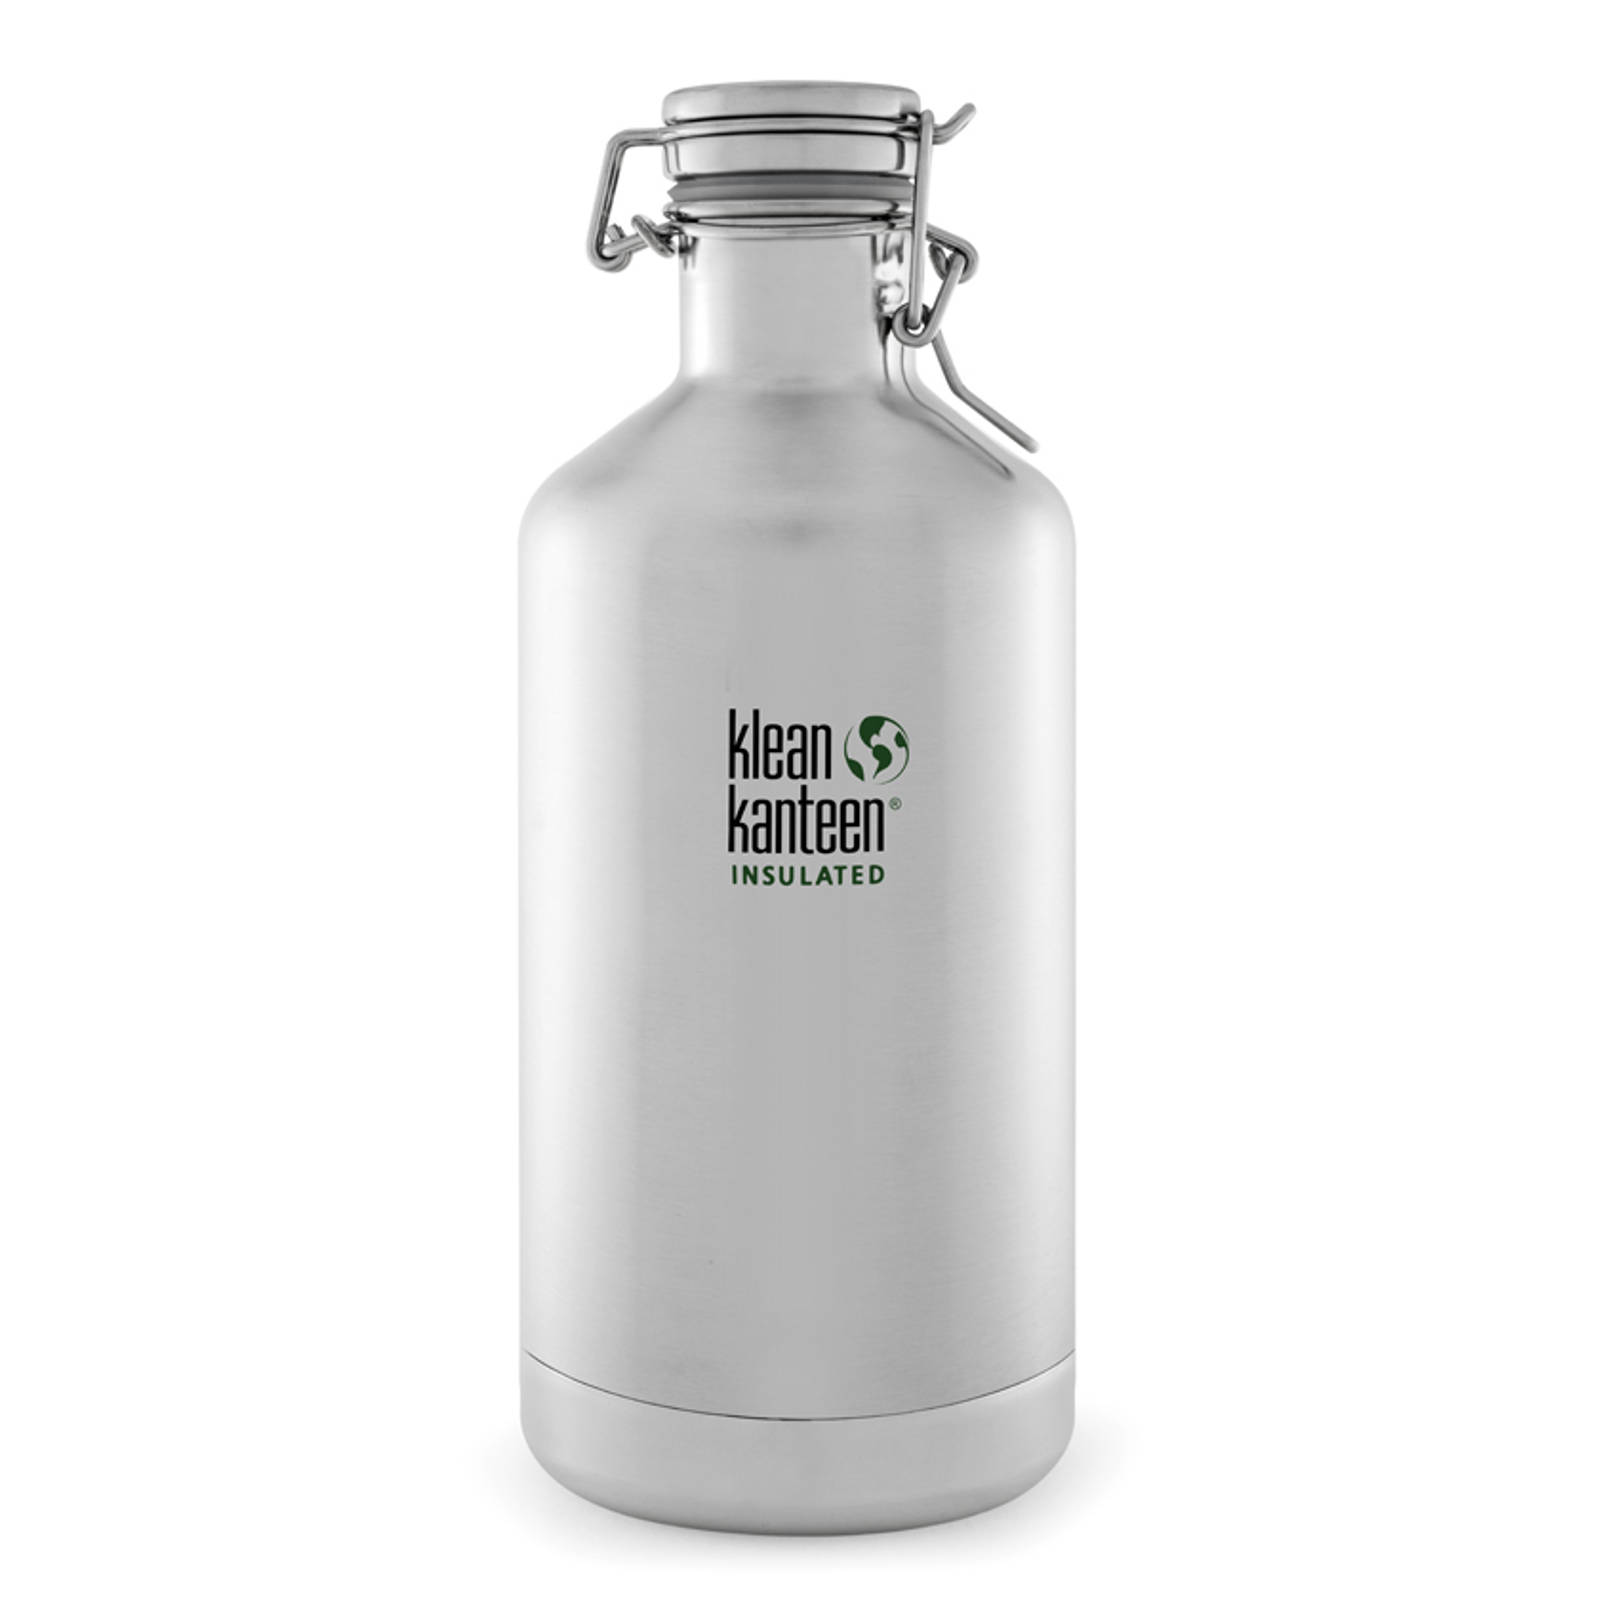 Klean Kanteen Insulated Growler 32oz